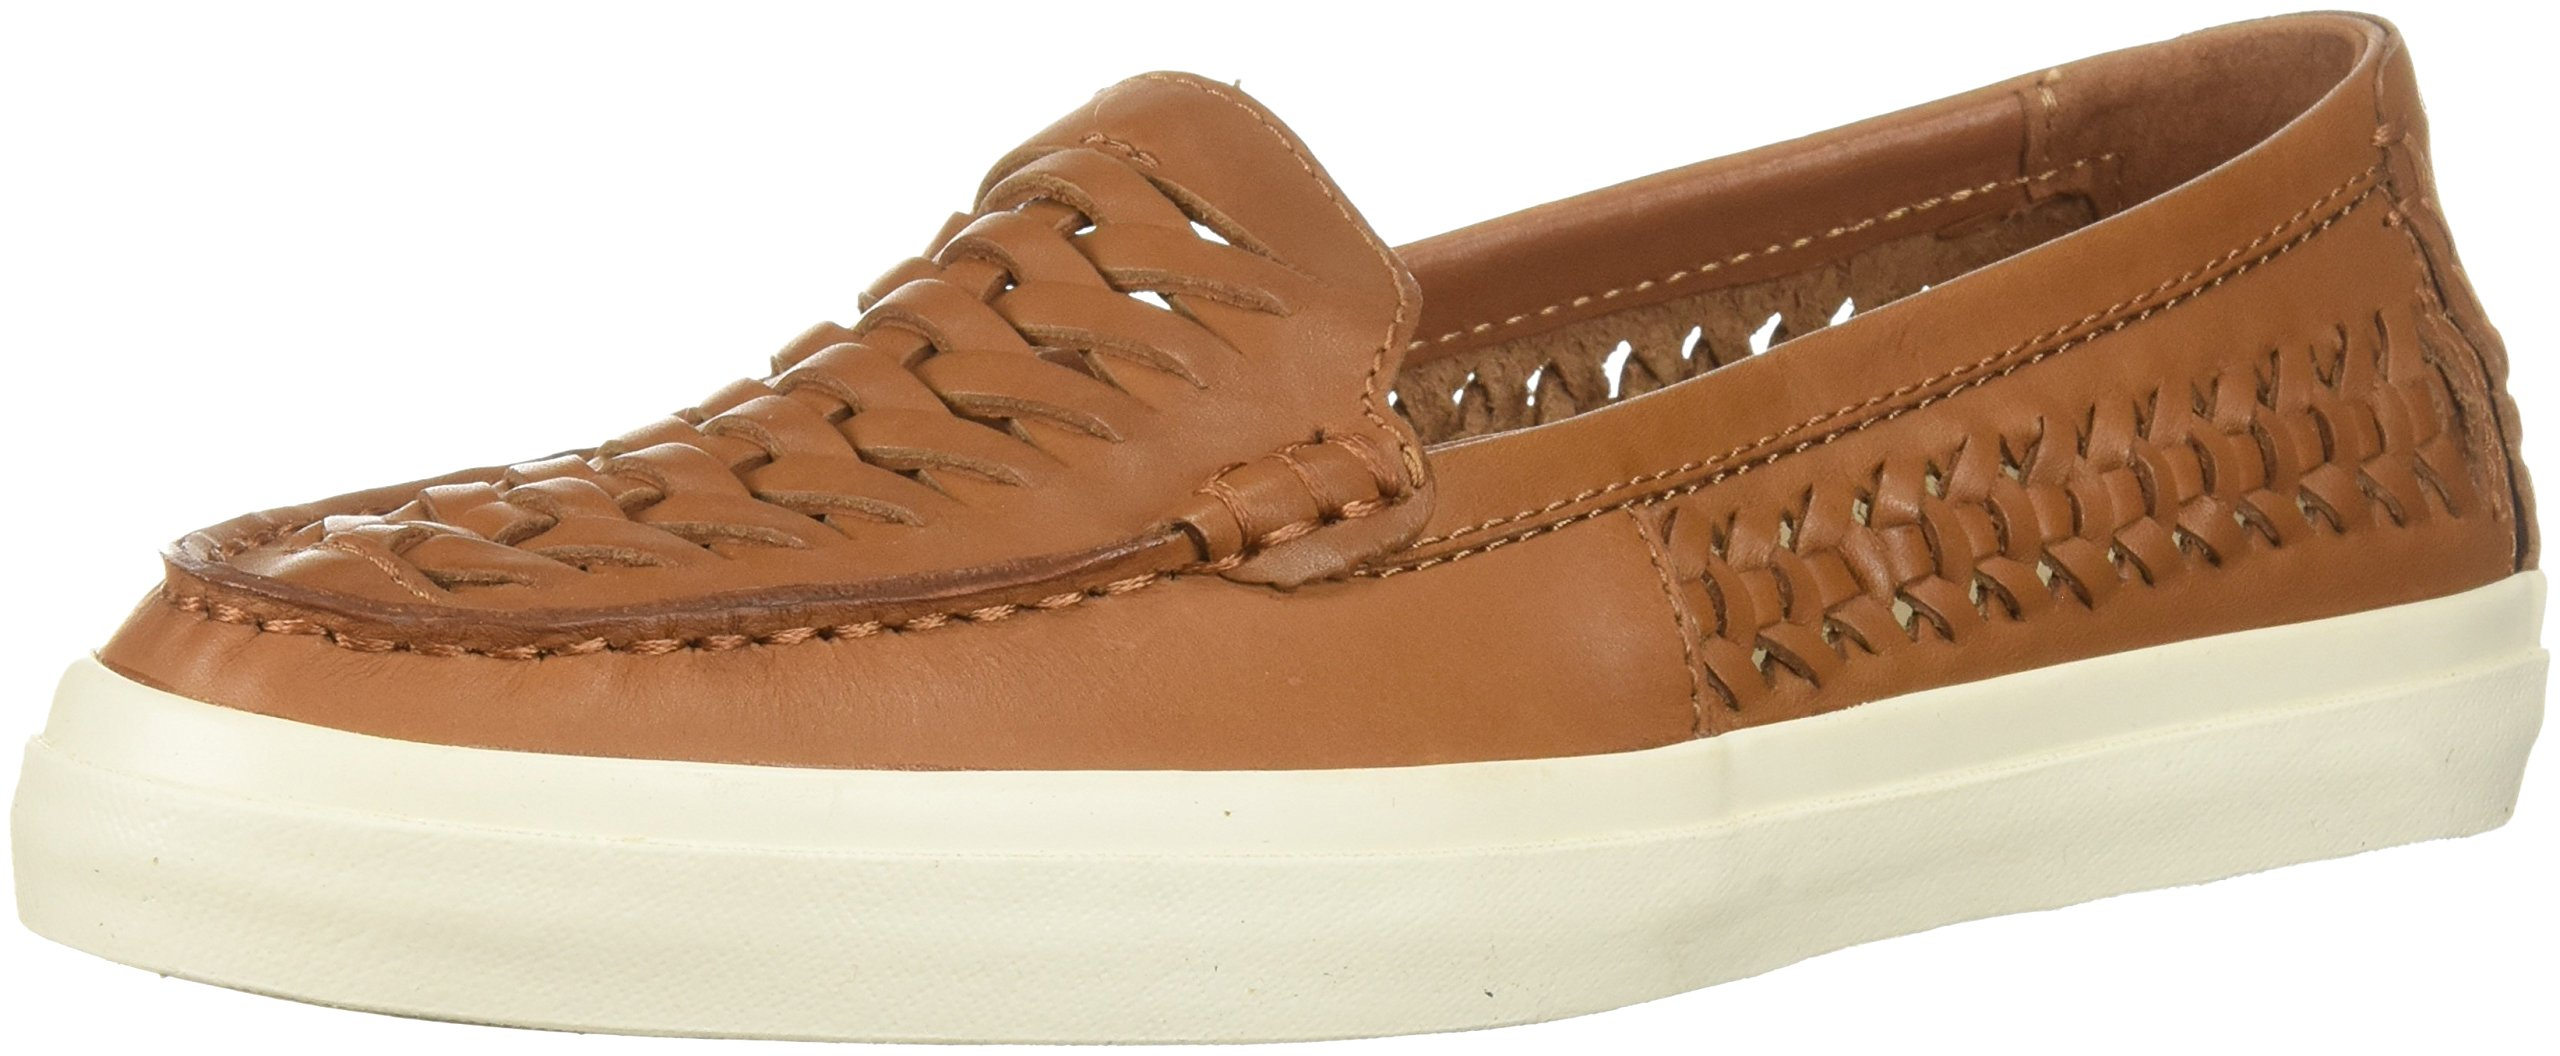 Cole Haan Women's Pinch Weekender LX Hurarche Penny Loafer, British Tan Leather, 8.5 B US